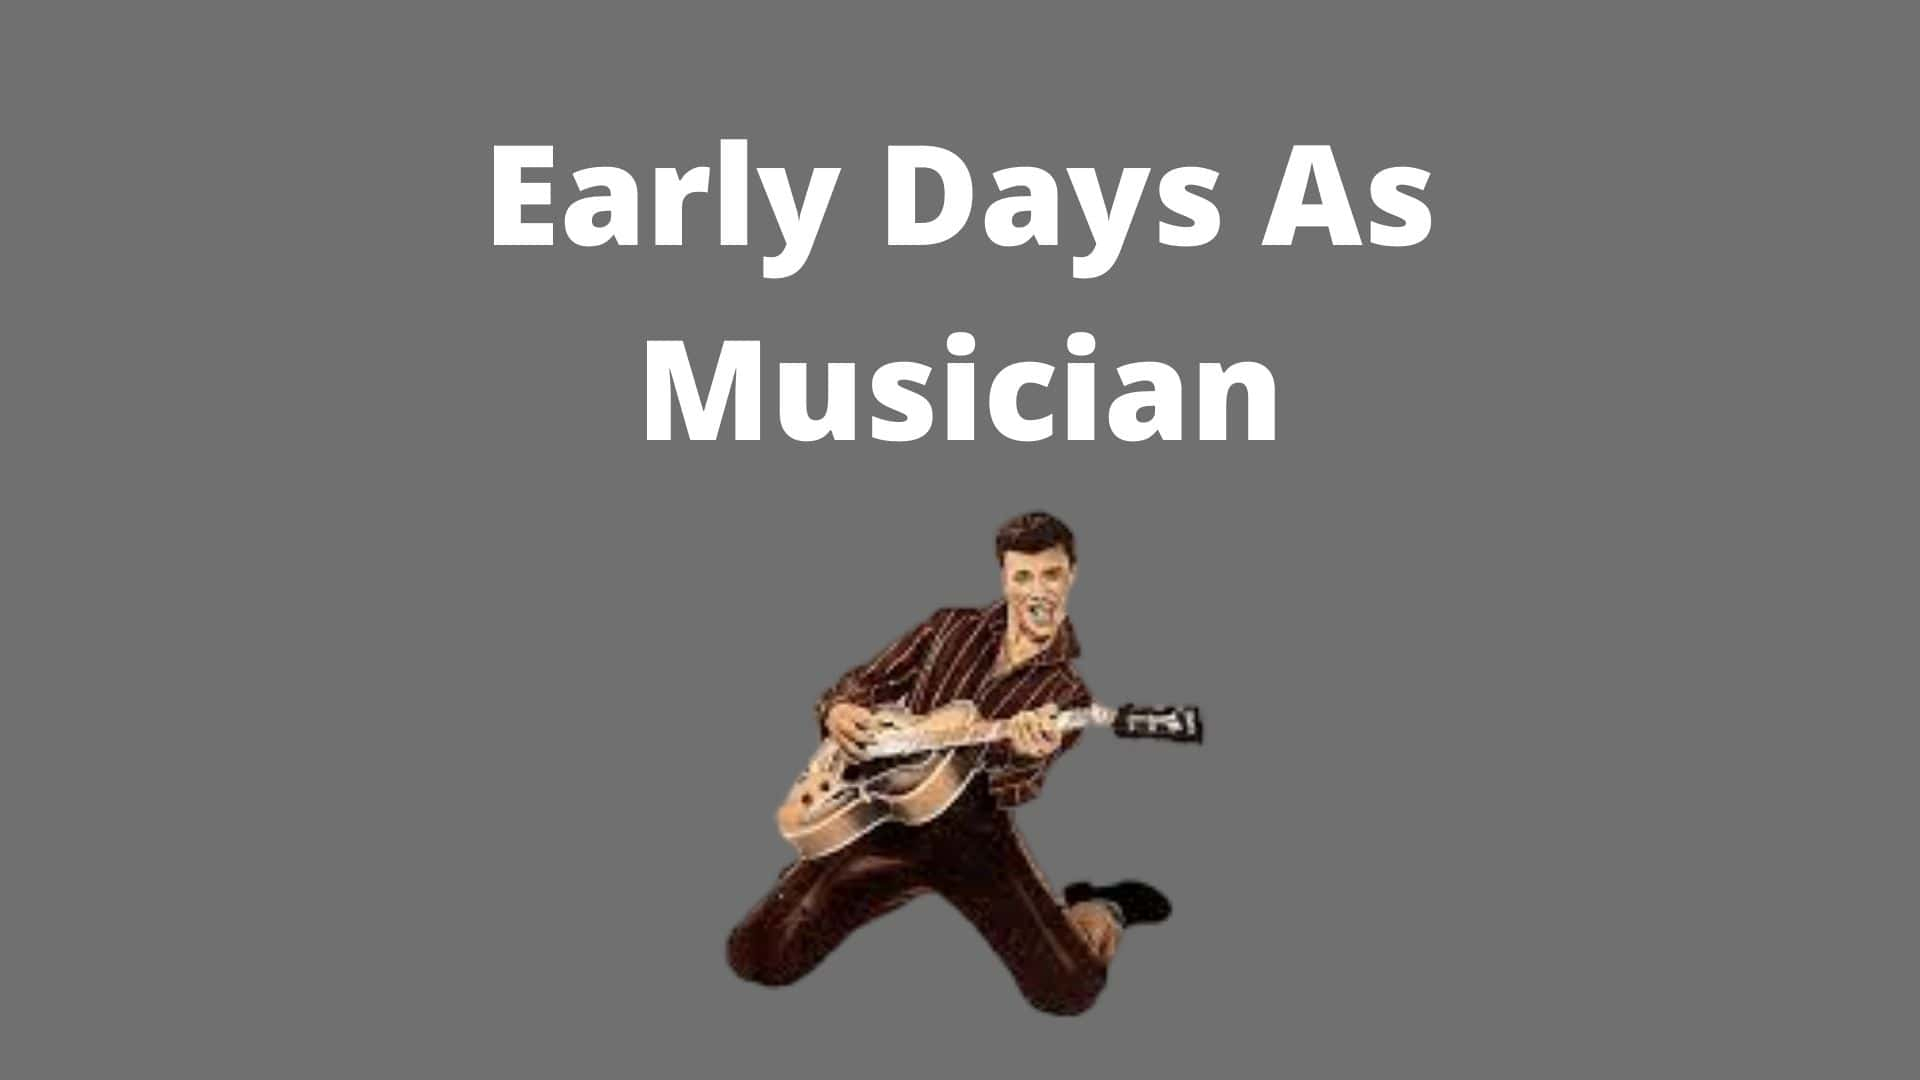 Early Days As Musician